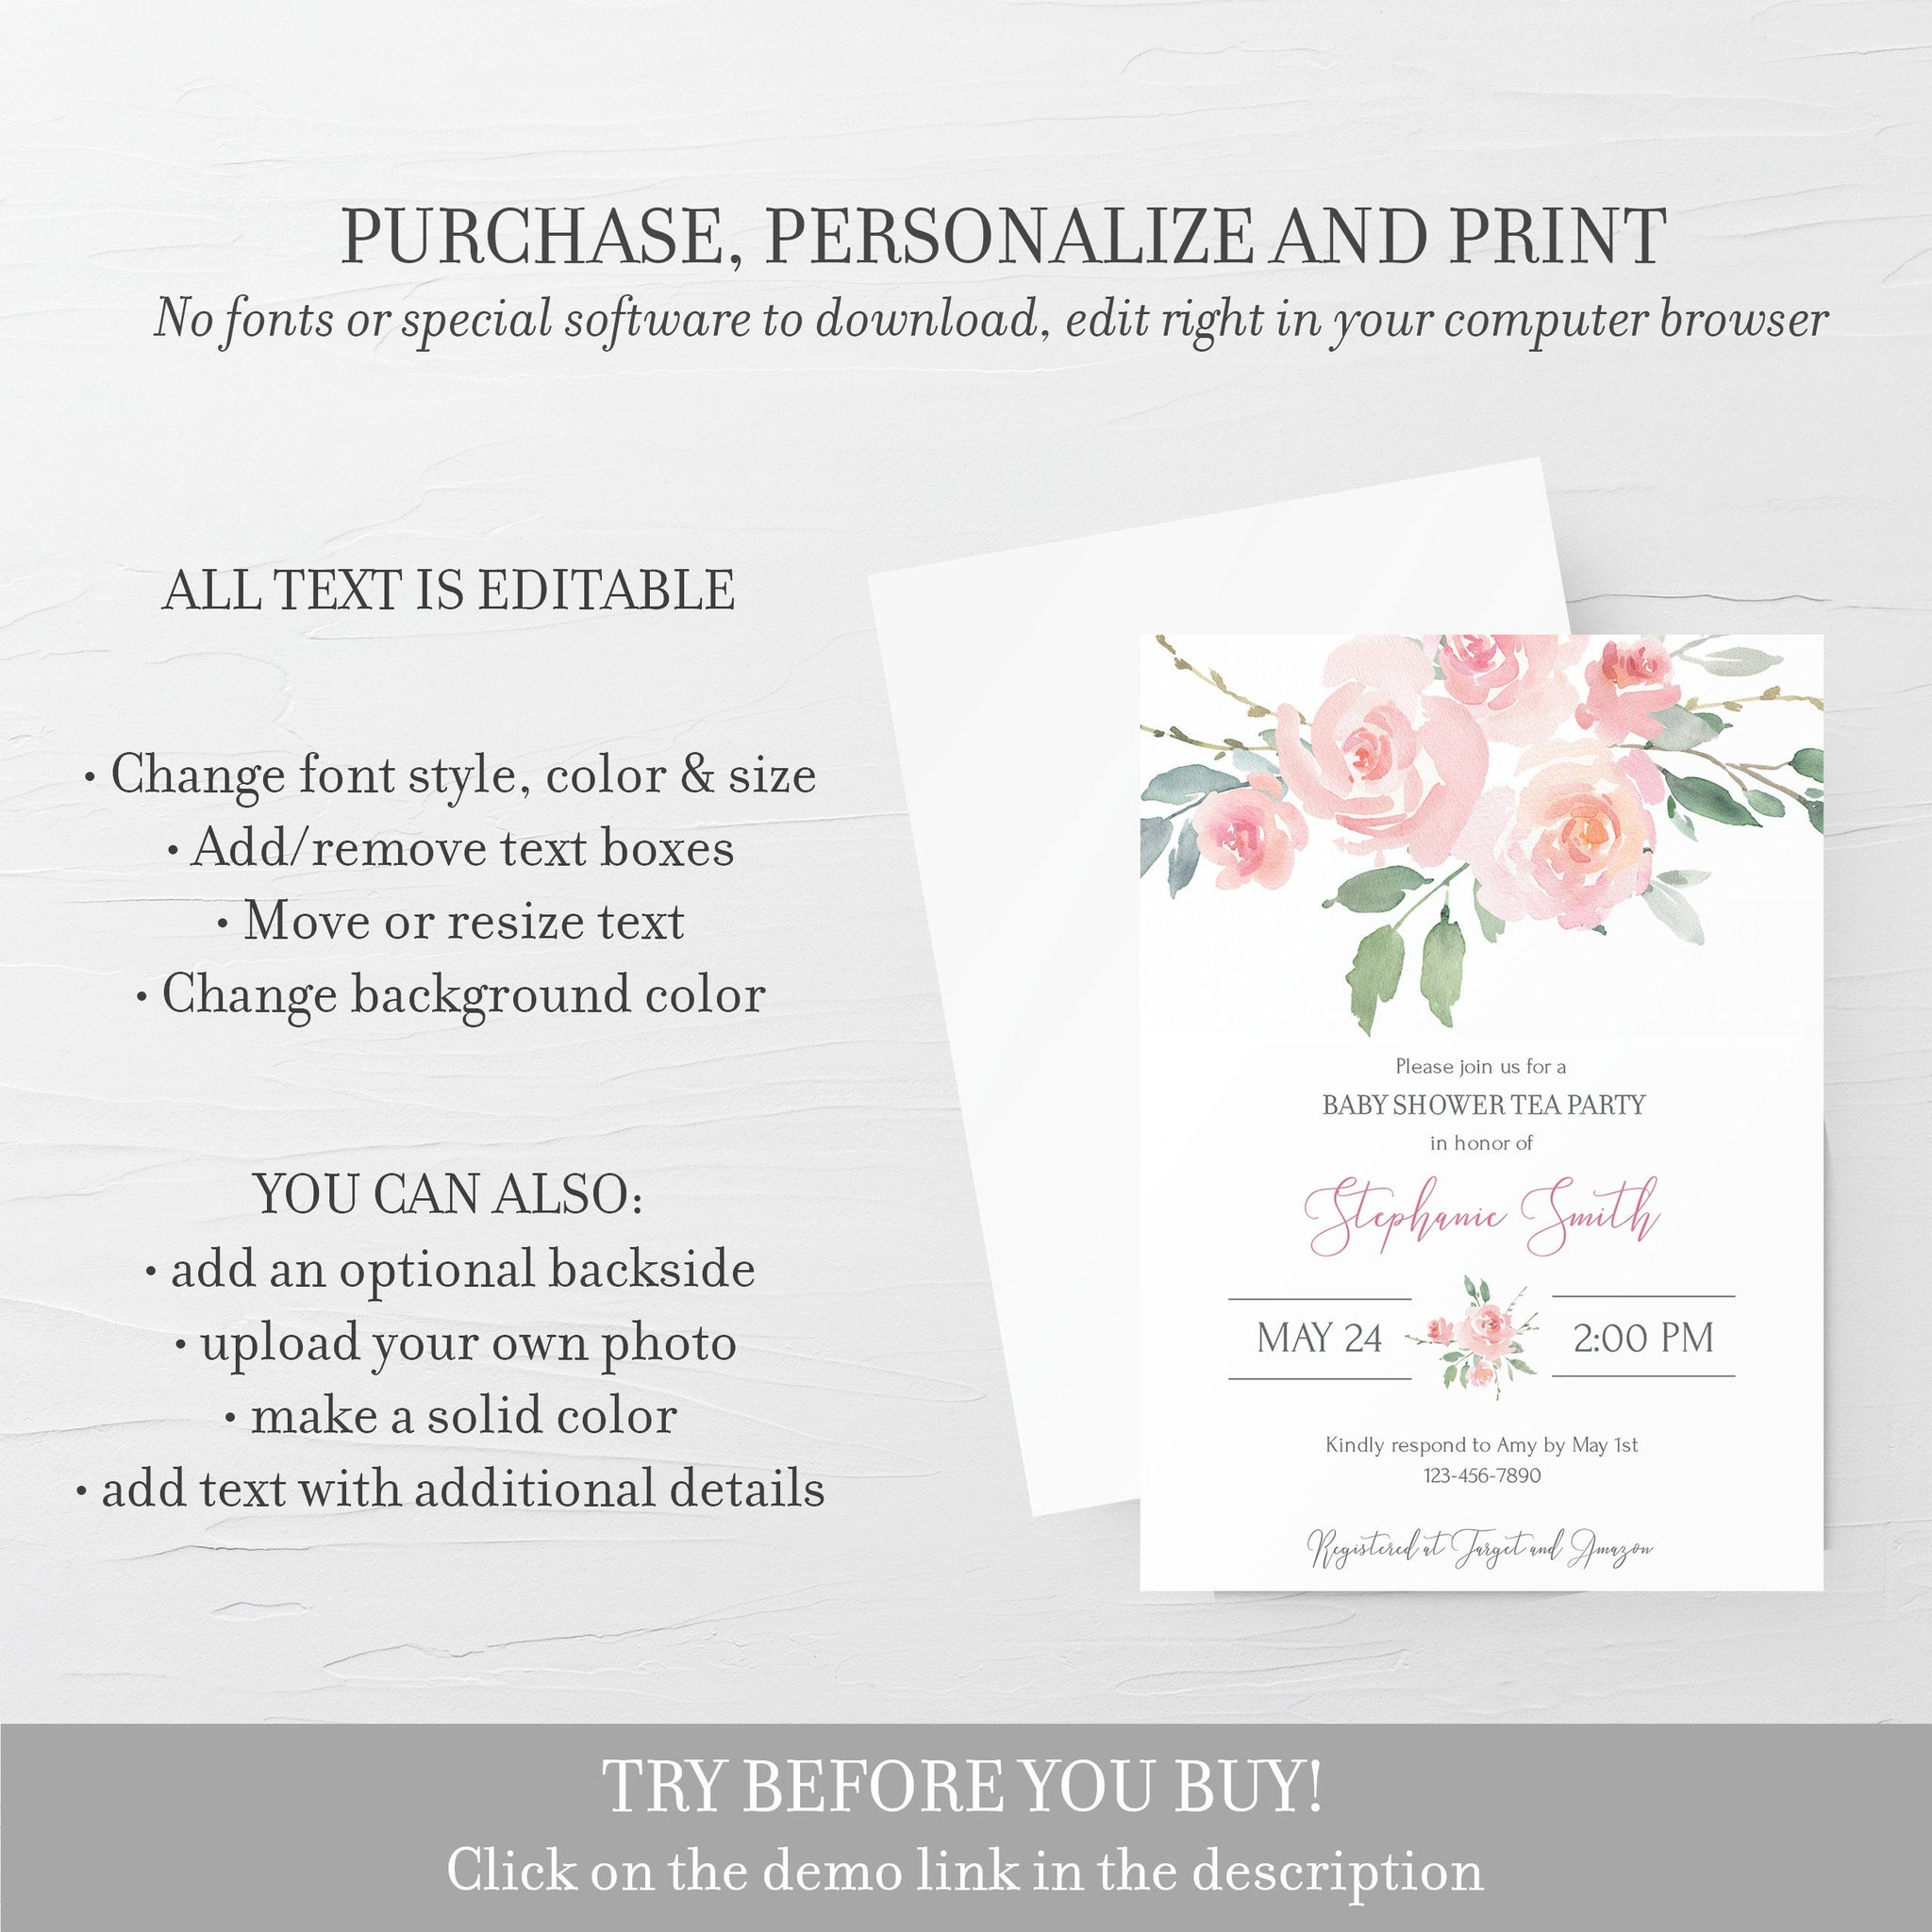 Tea Party Baby Shower Invitation Template, Pink Floral Baby Shower Invite Printable, Editable DIGITAL DOWNLOAD - FR100 - @PlumPolkaDot